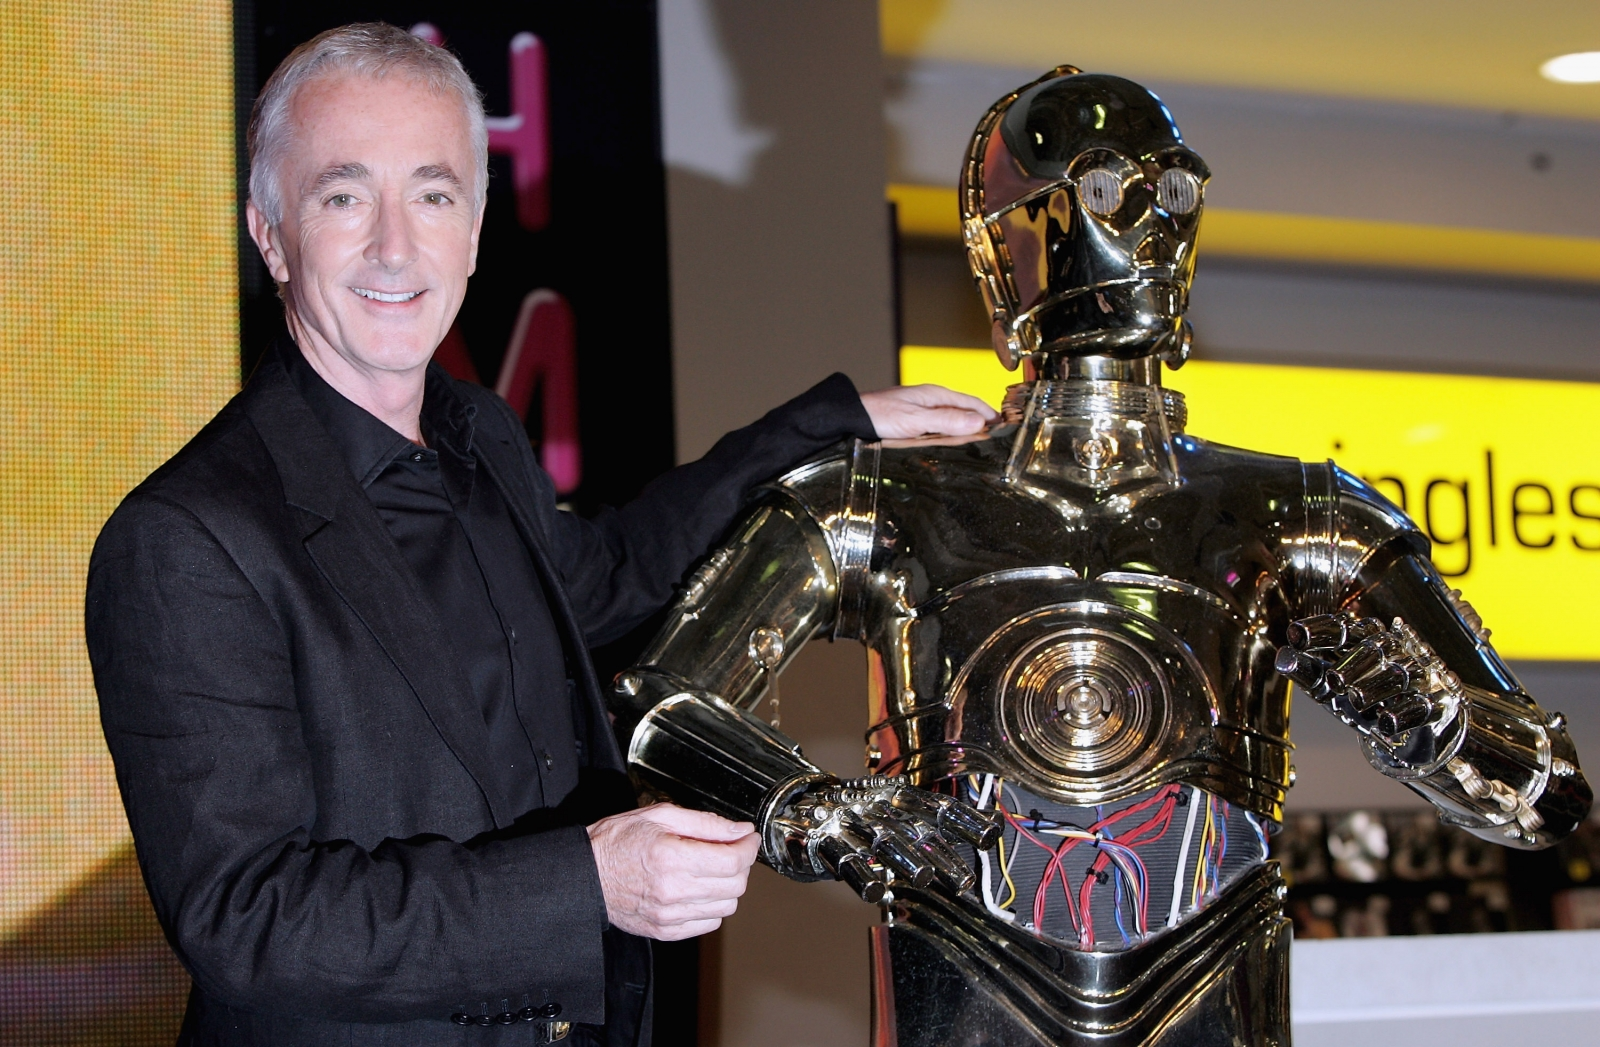 anthony daniels lord of the ringsanthony daniels imdb, anthony daniels lord of the rings, anthony daniels height, anthony daniels instagram, anthony daniels interview, anthony daniels, anthony daniels cancer, anthony daniels kenny baker, anthony daniels star wars, anthony daniels wiki, anthony daniels autograph, anthony daniels young, anthony daniels net worth, anthony daniels movies, anthony daniels jerk, anthony daniels alabama, anthony daniels c3po behind the scenes, anthony daniels voice, anthony daniels kenny baker feud